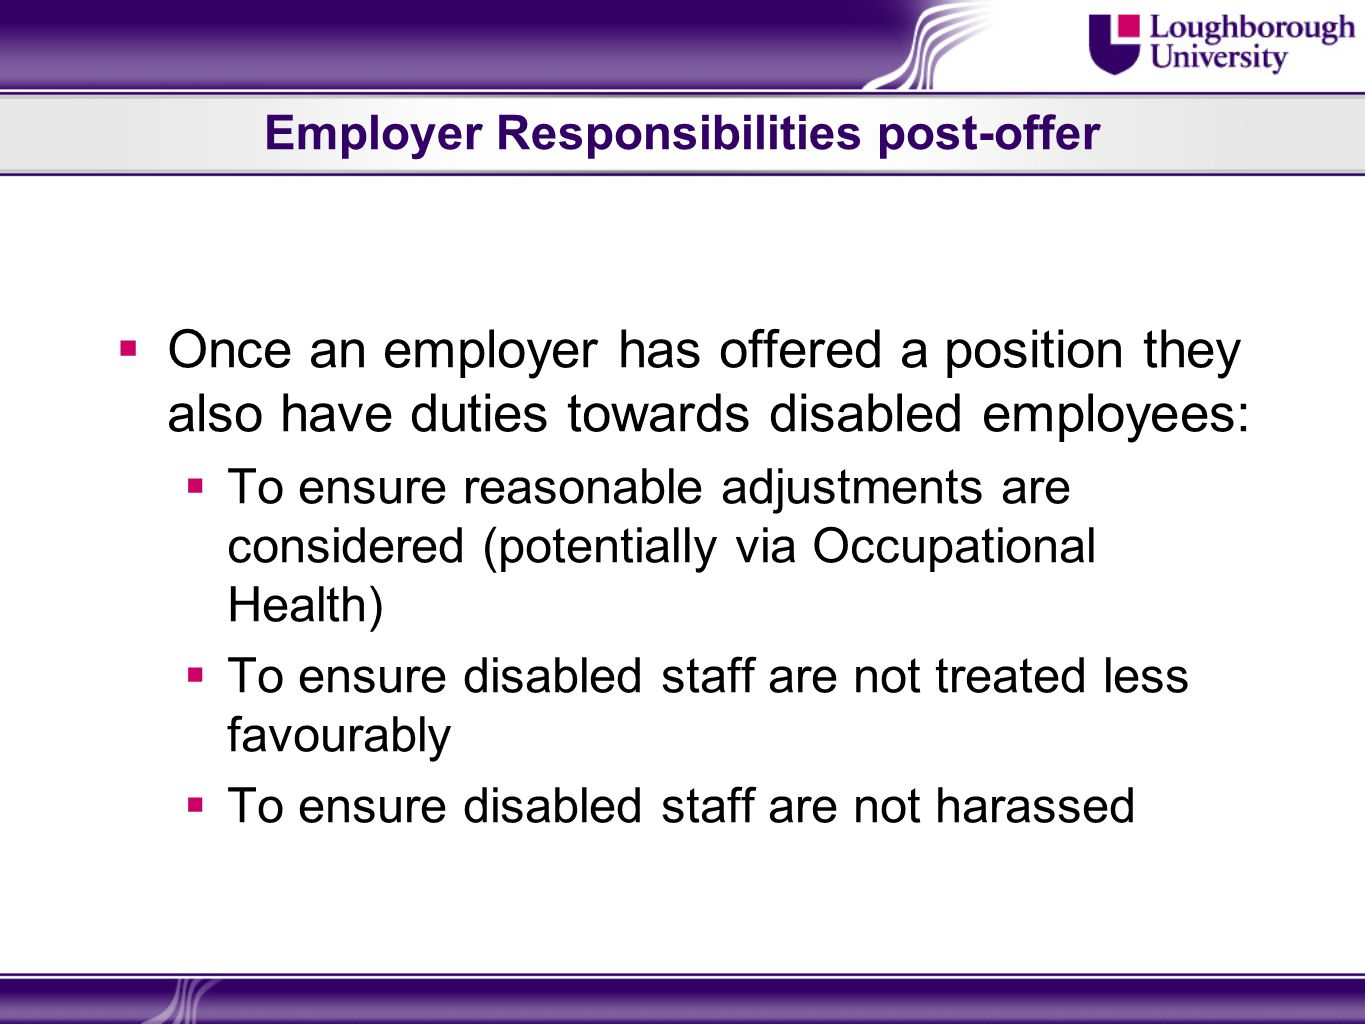 Employer Responsibilities post-offer Once an employer has offered a position they also have duties towards disabled employees: To ensure reasonable adjustments are considered (potentially via Occupational Health) To ensure disabled staff are not treated less favourably To ensure disabled staff are not harassed